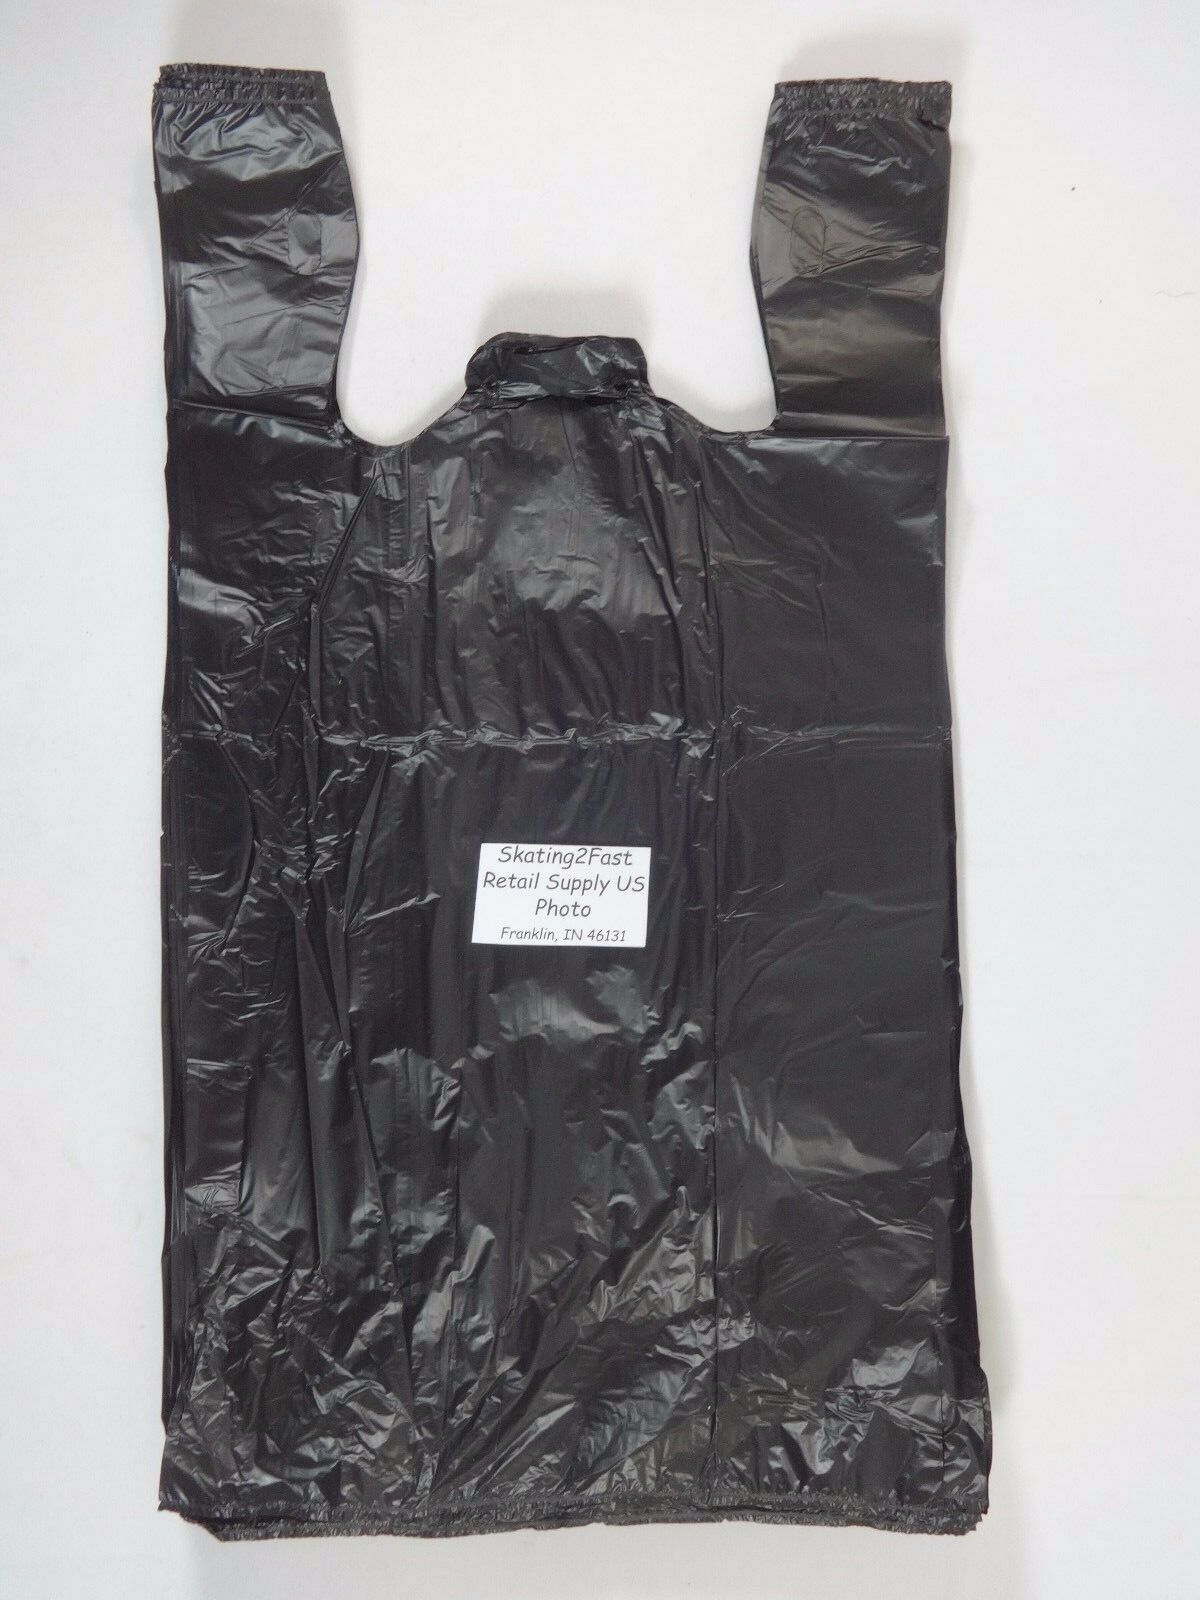 1/6 GRACIAS Carry - Out Plastic T-Shirt Bags Black with Hand